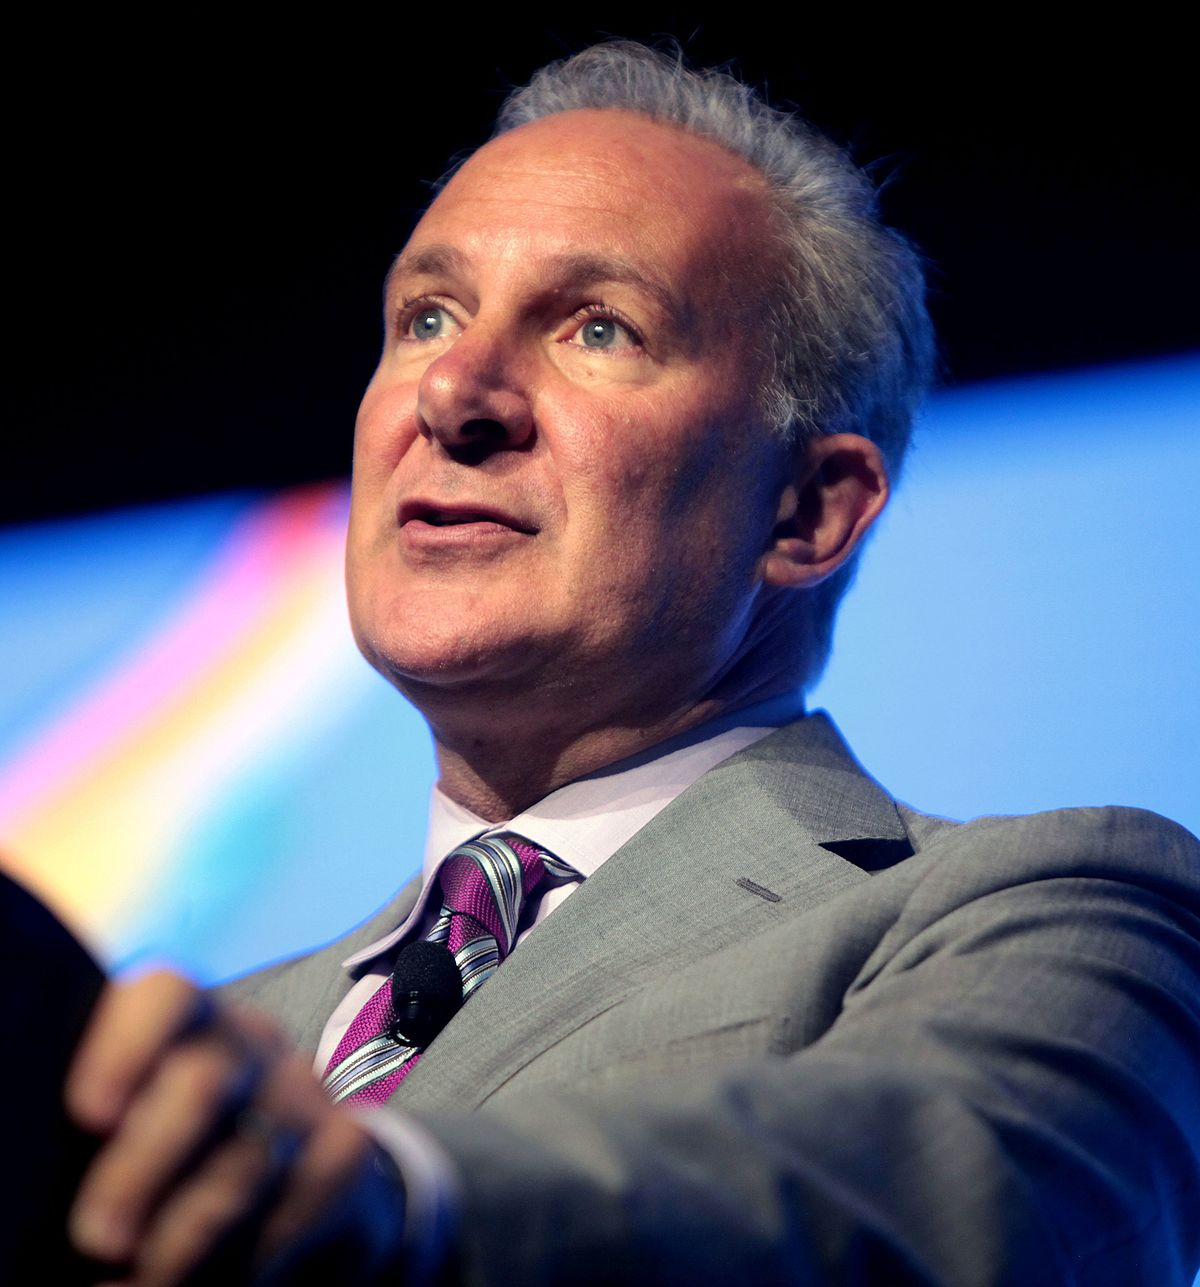 Peter Schiff - Wikipedia